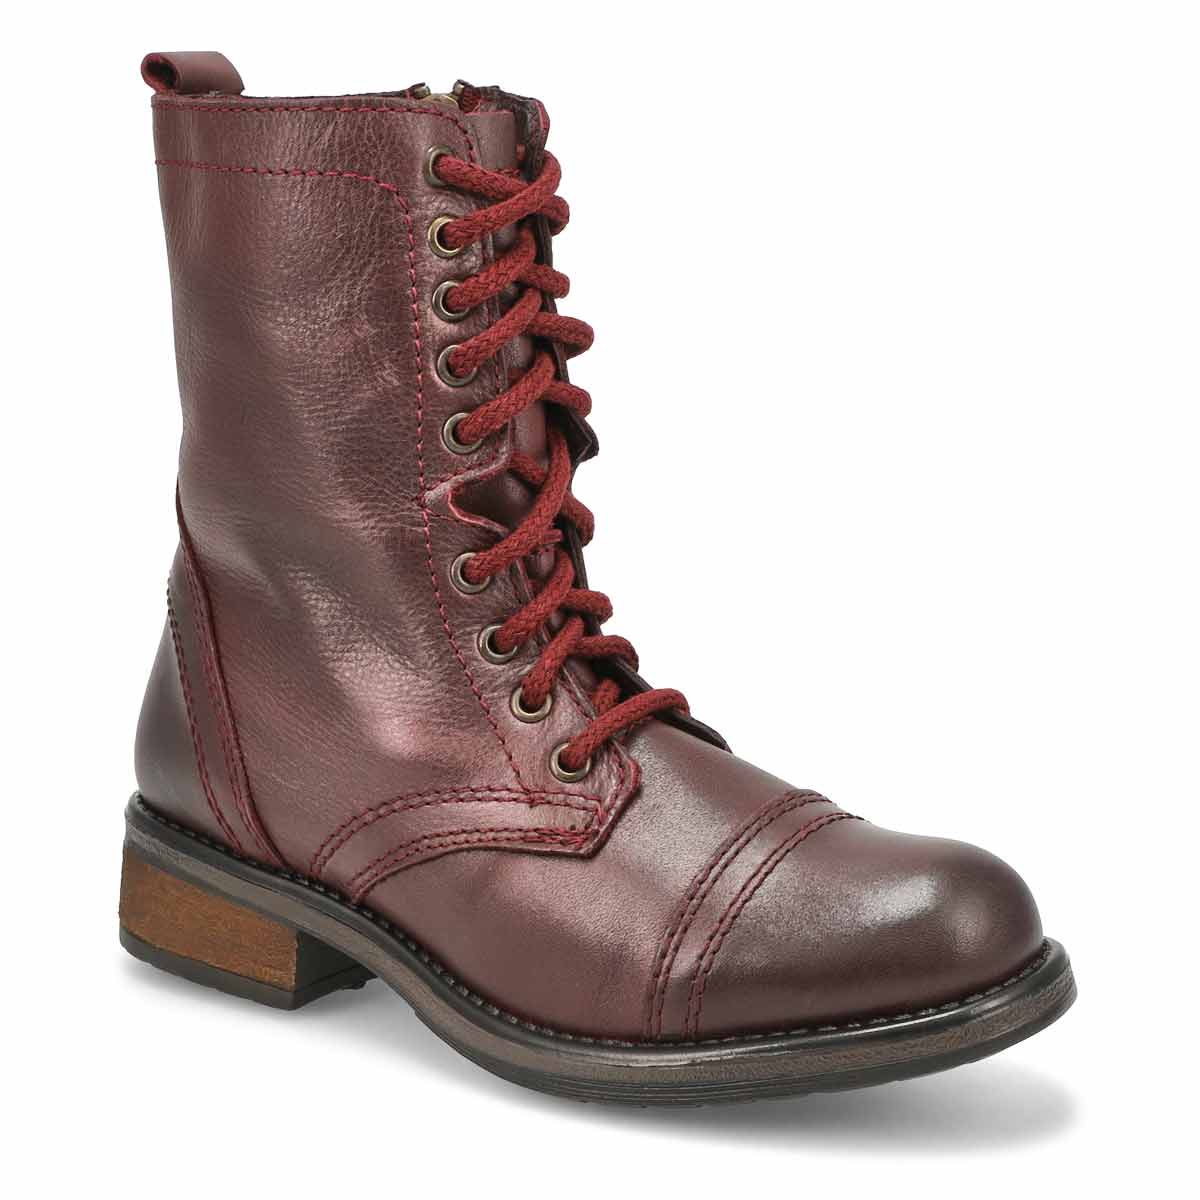 Women's TROOPA 4.0 burgundy lace up combat boots